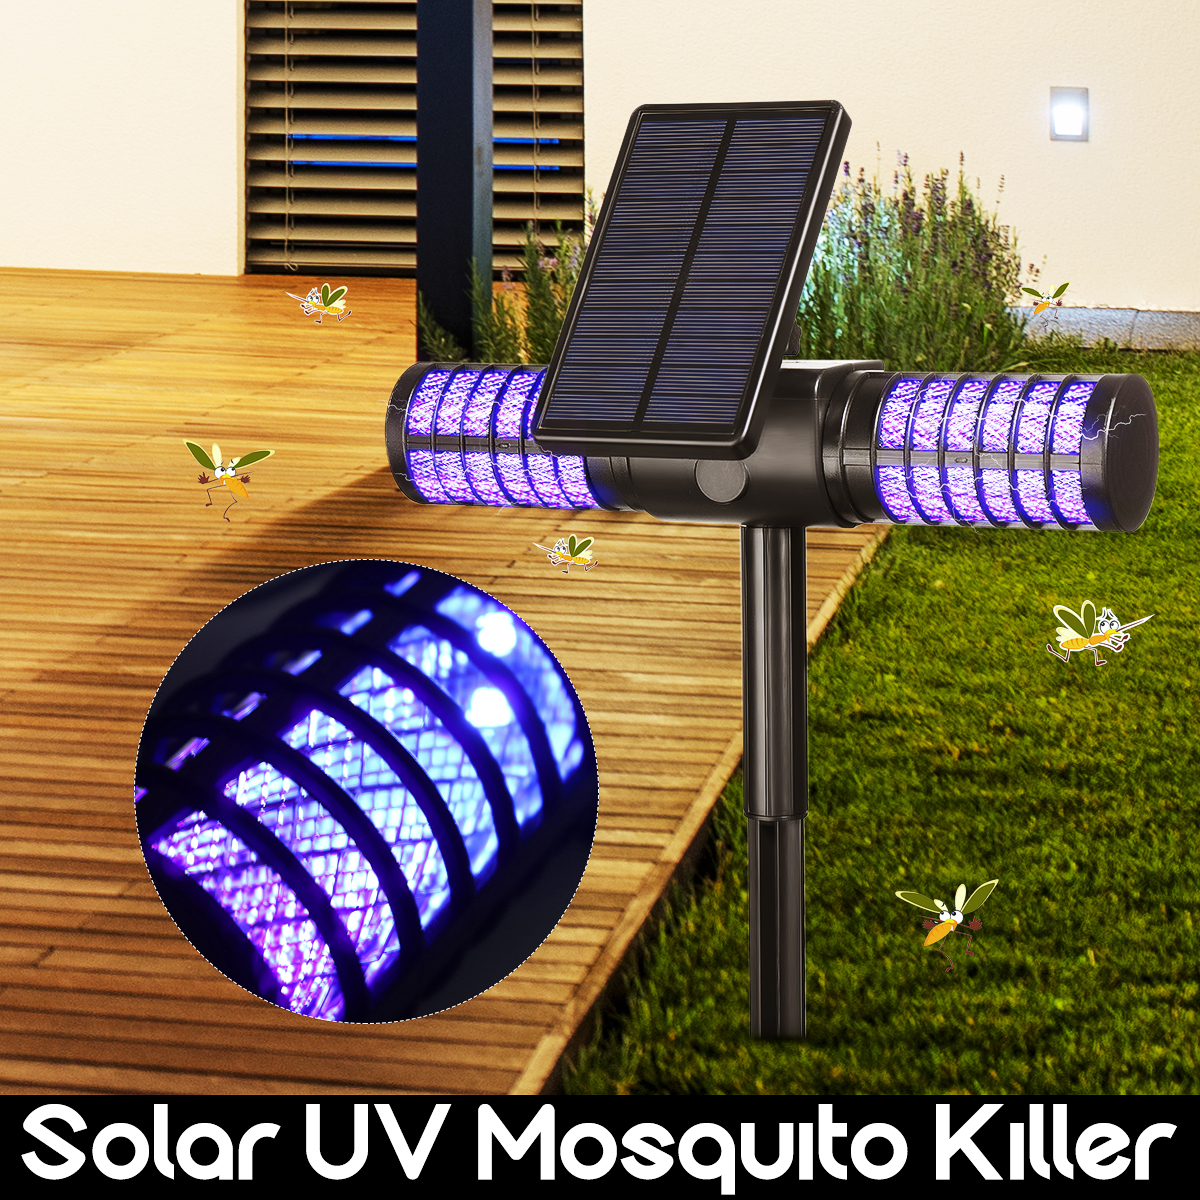 Led Solar Mosquito Killer LIght IP65 Waterproof USB Mosquito Insect Trap Lamp Automatic UV Bug Zapper Wall Light цены онлайн